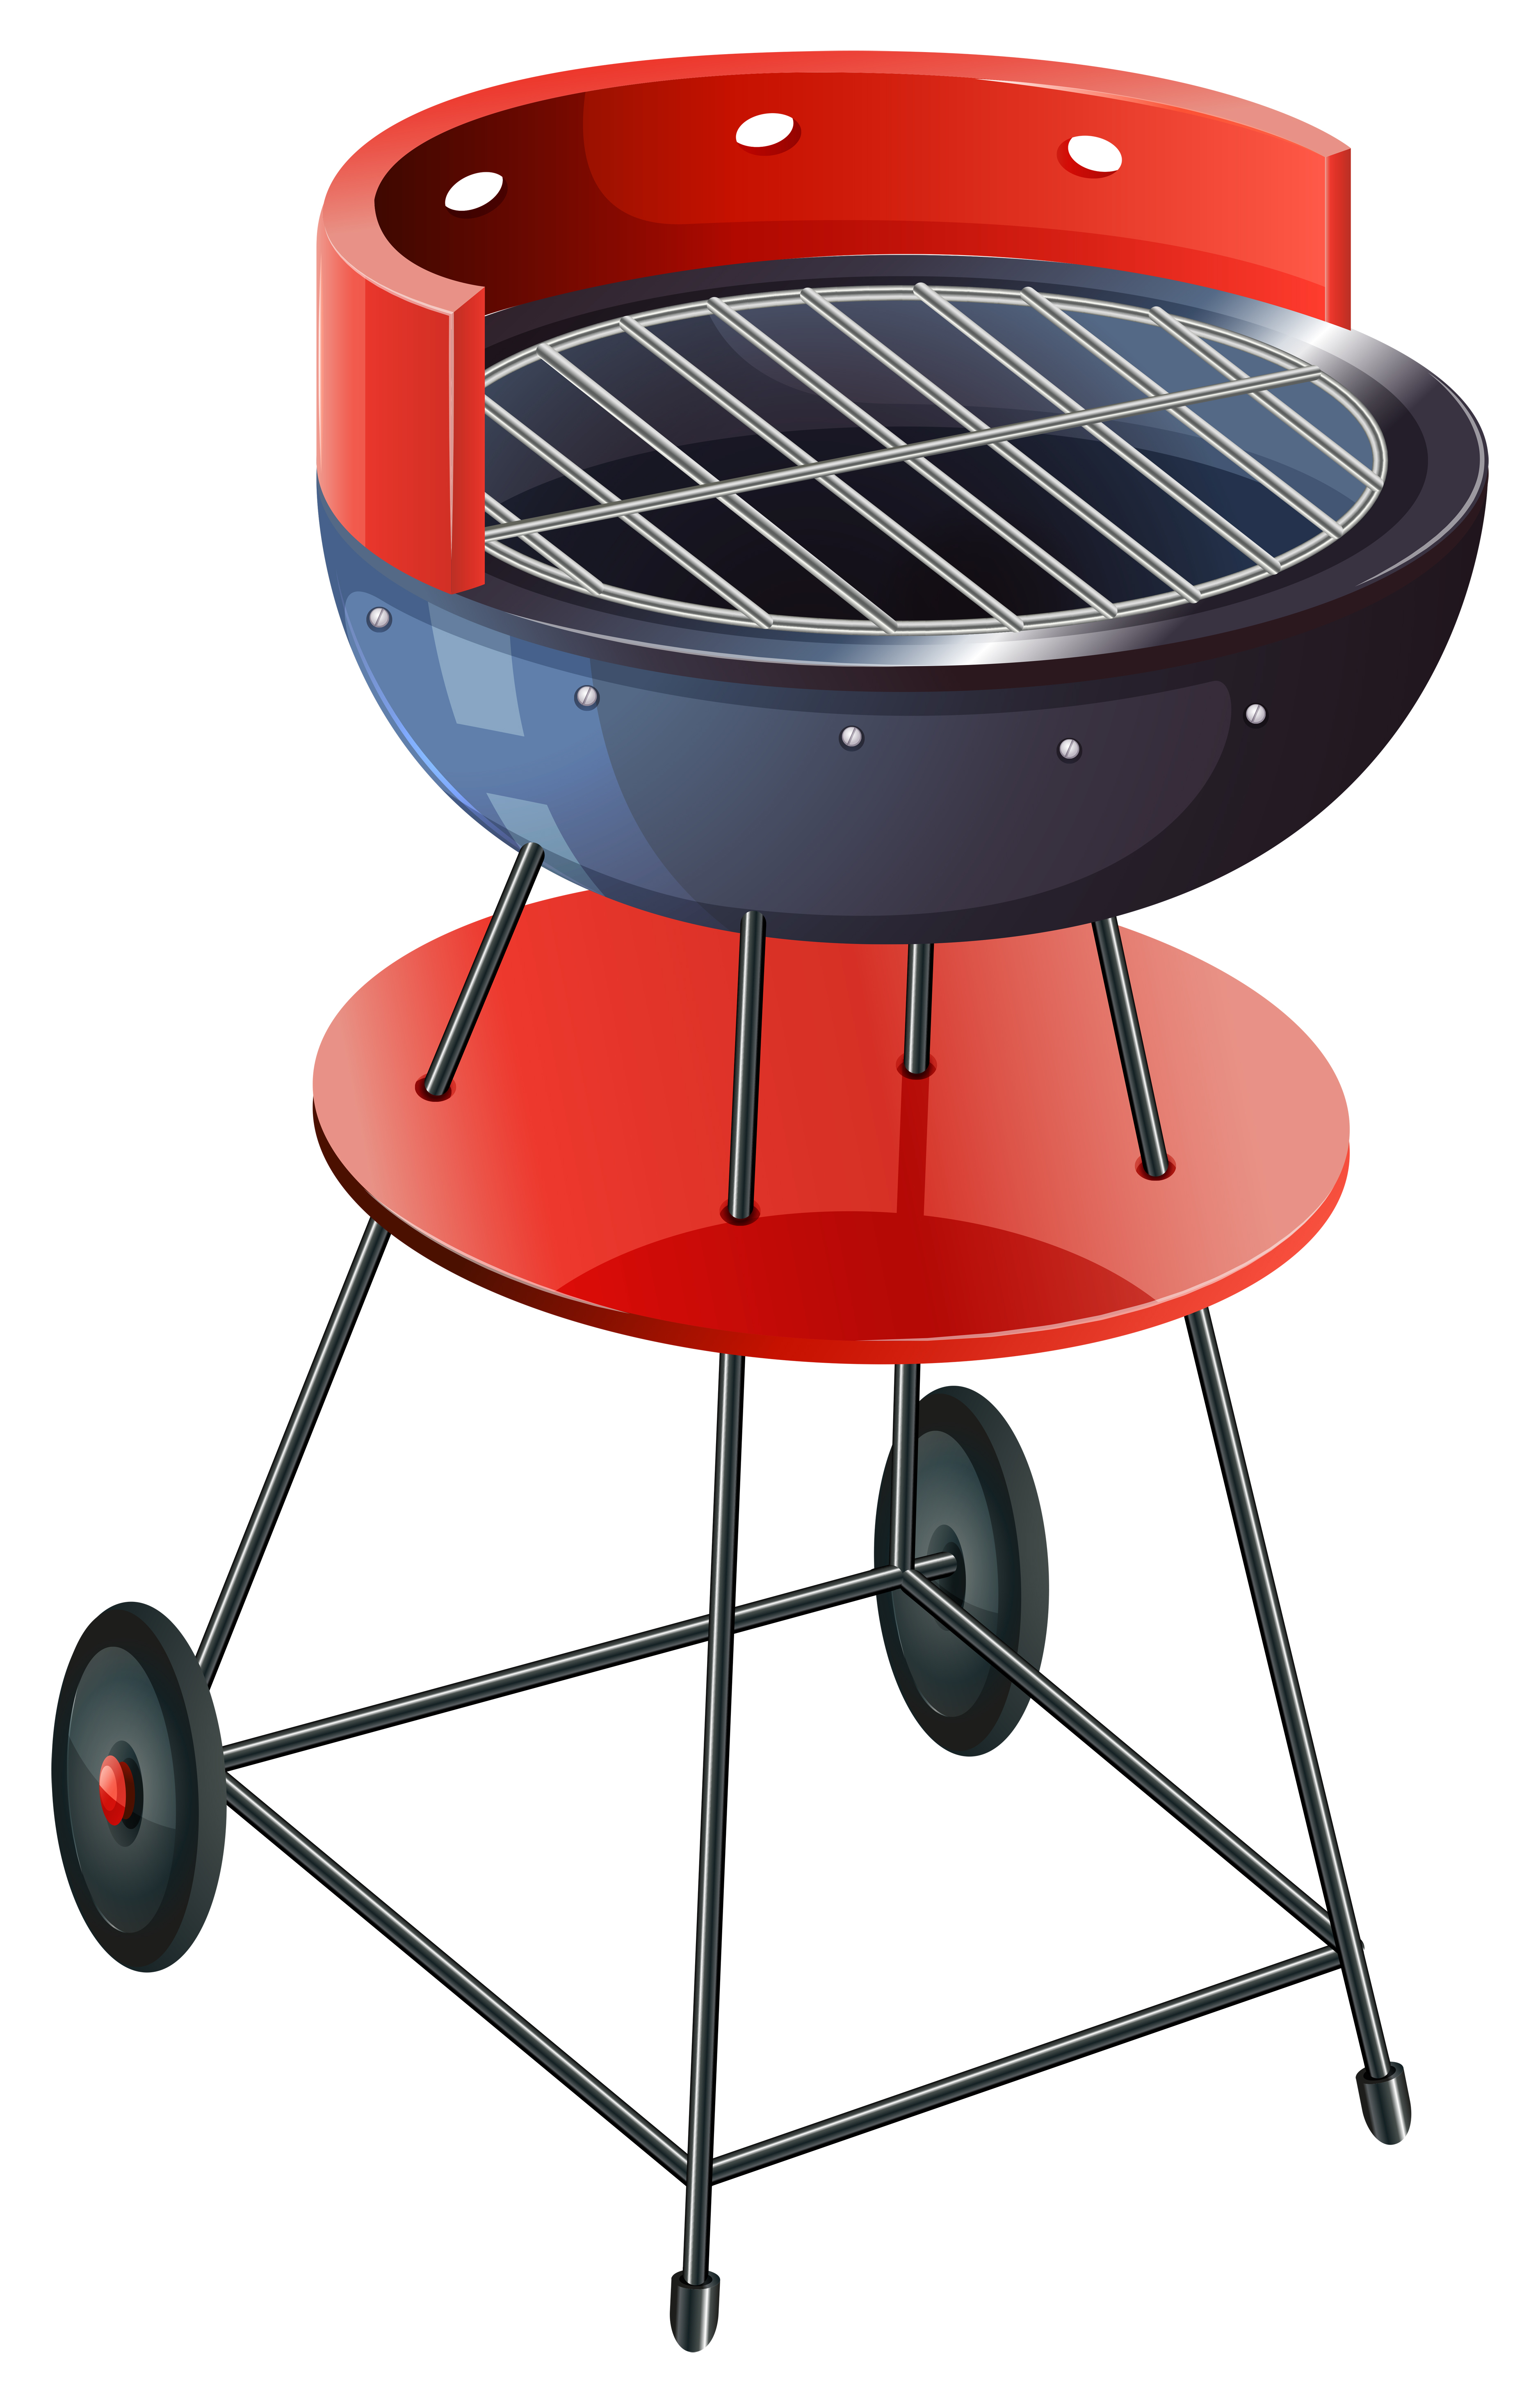 Flame Grill Free Vector Art 4327 Free Downloads